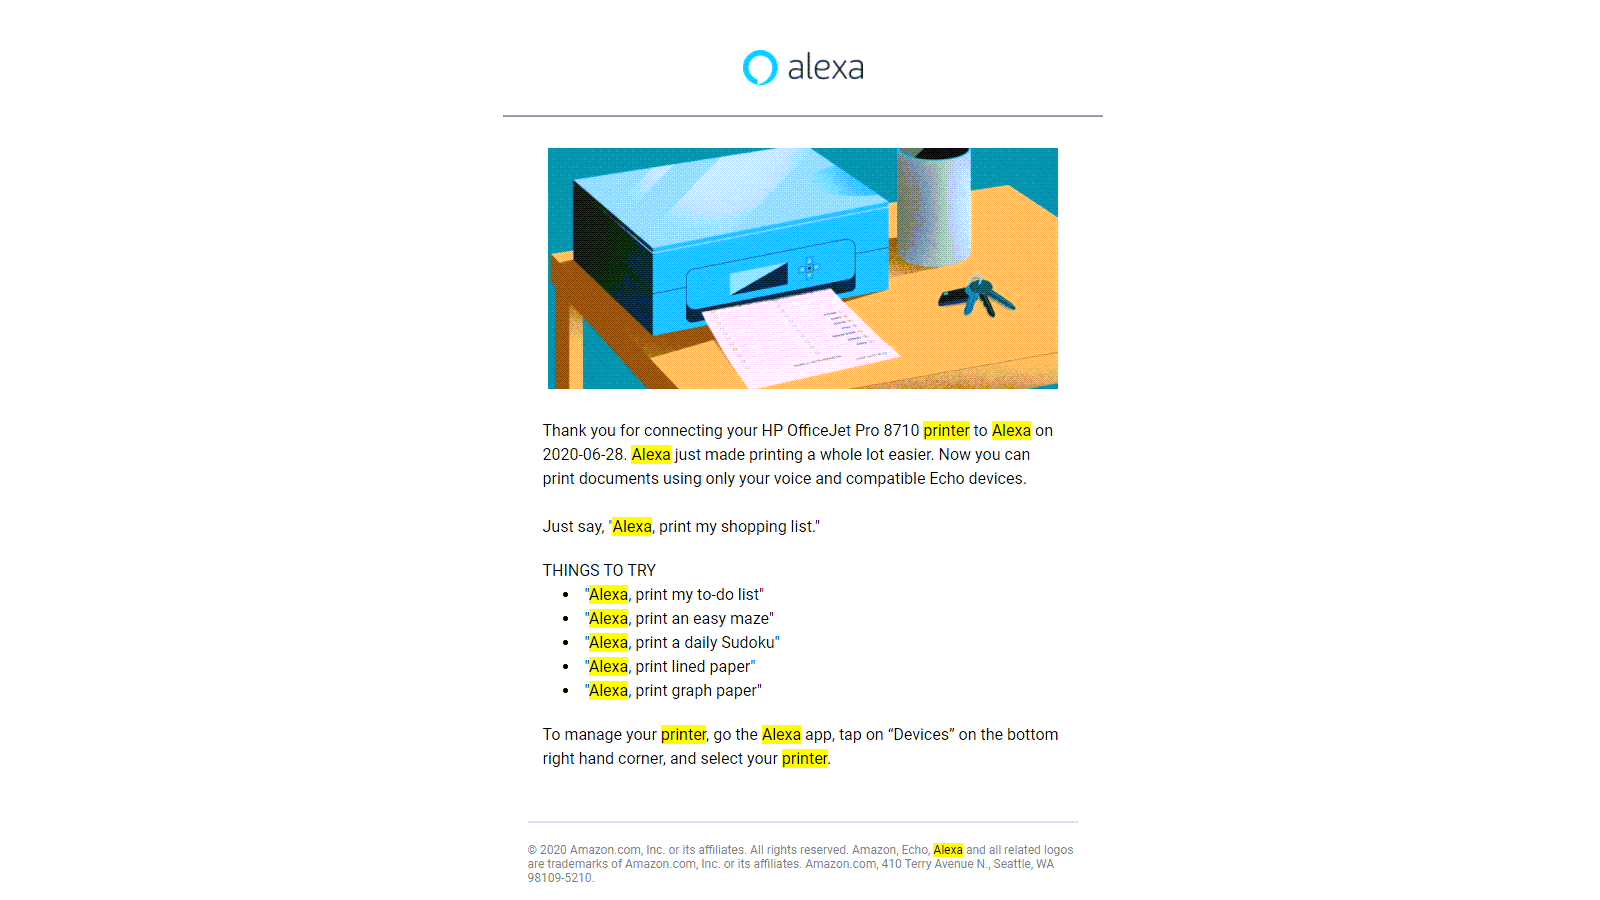 An email, thanking the user for connecting a printer to Alexa